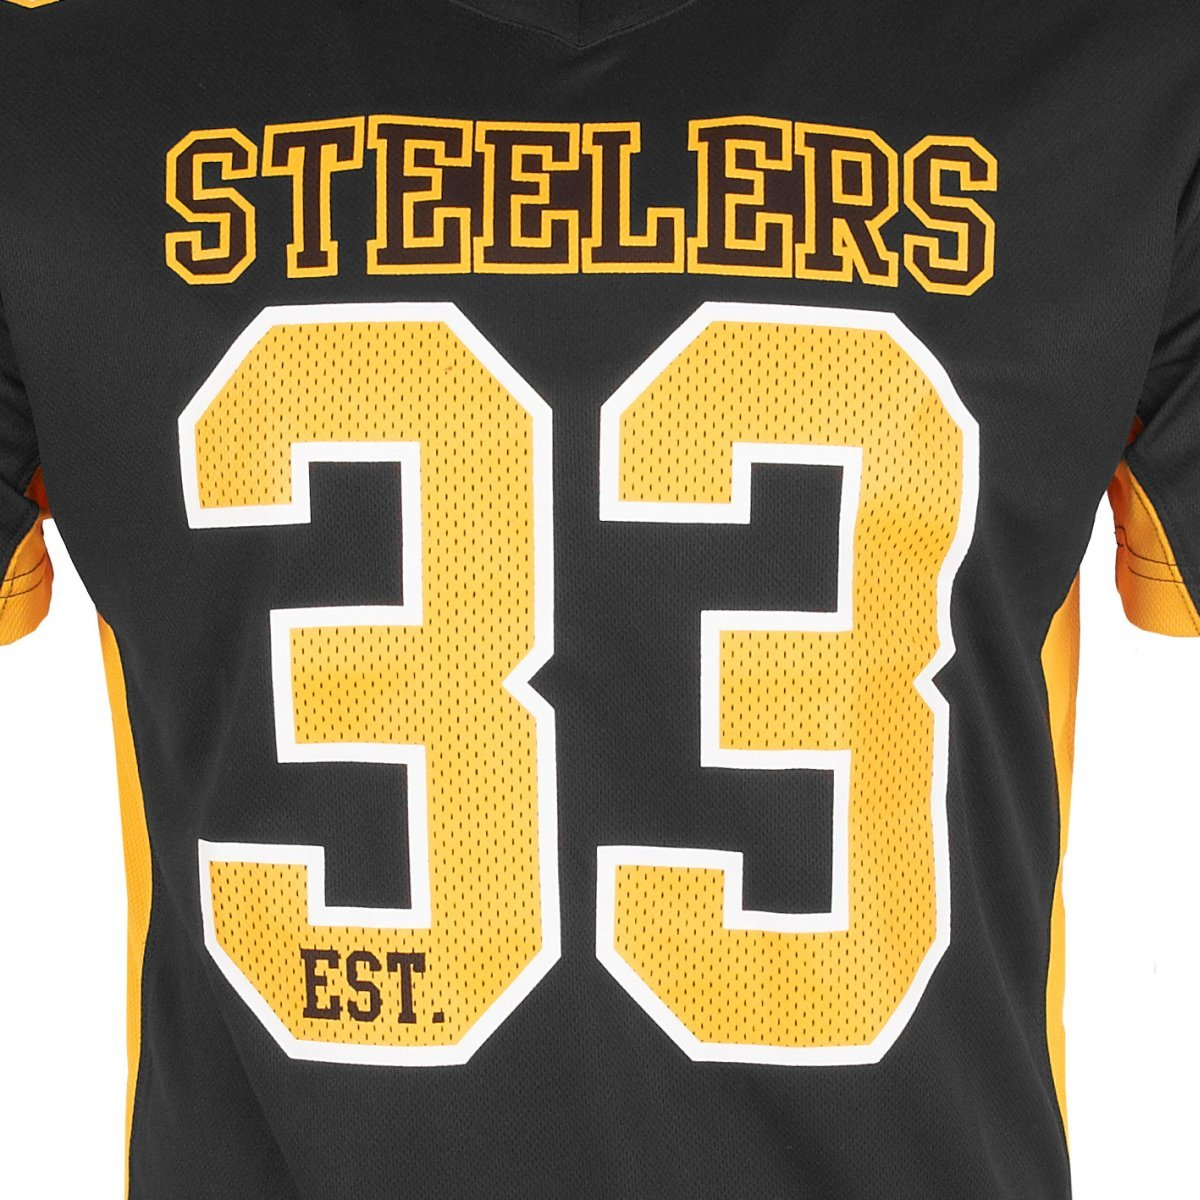 4c1bbf791725a Majestic Pittsburgh Steelers Moro Est. 33 Mesh Jersey NFL T-Shirt   Amazon.co.uk  Sports   Outdoors